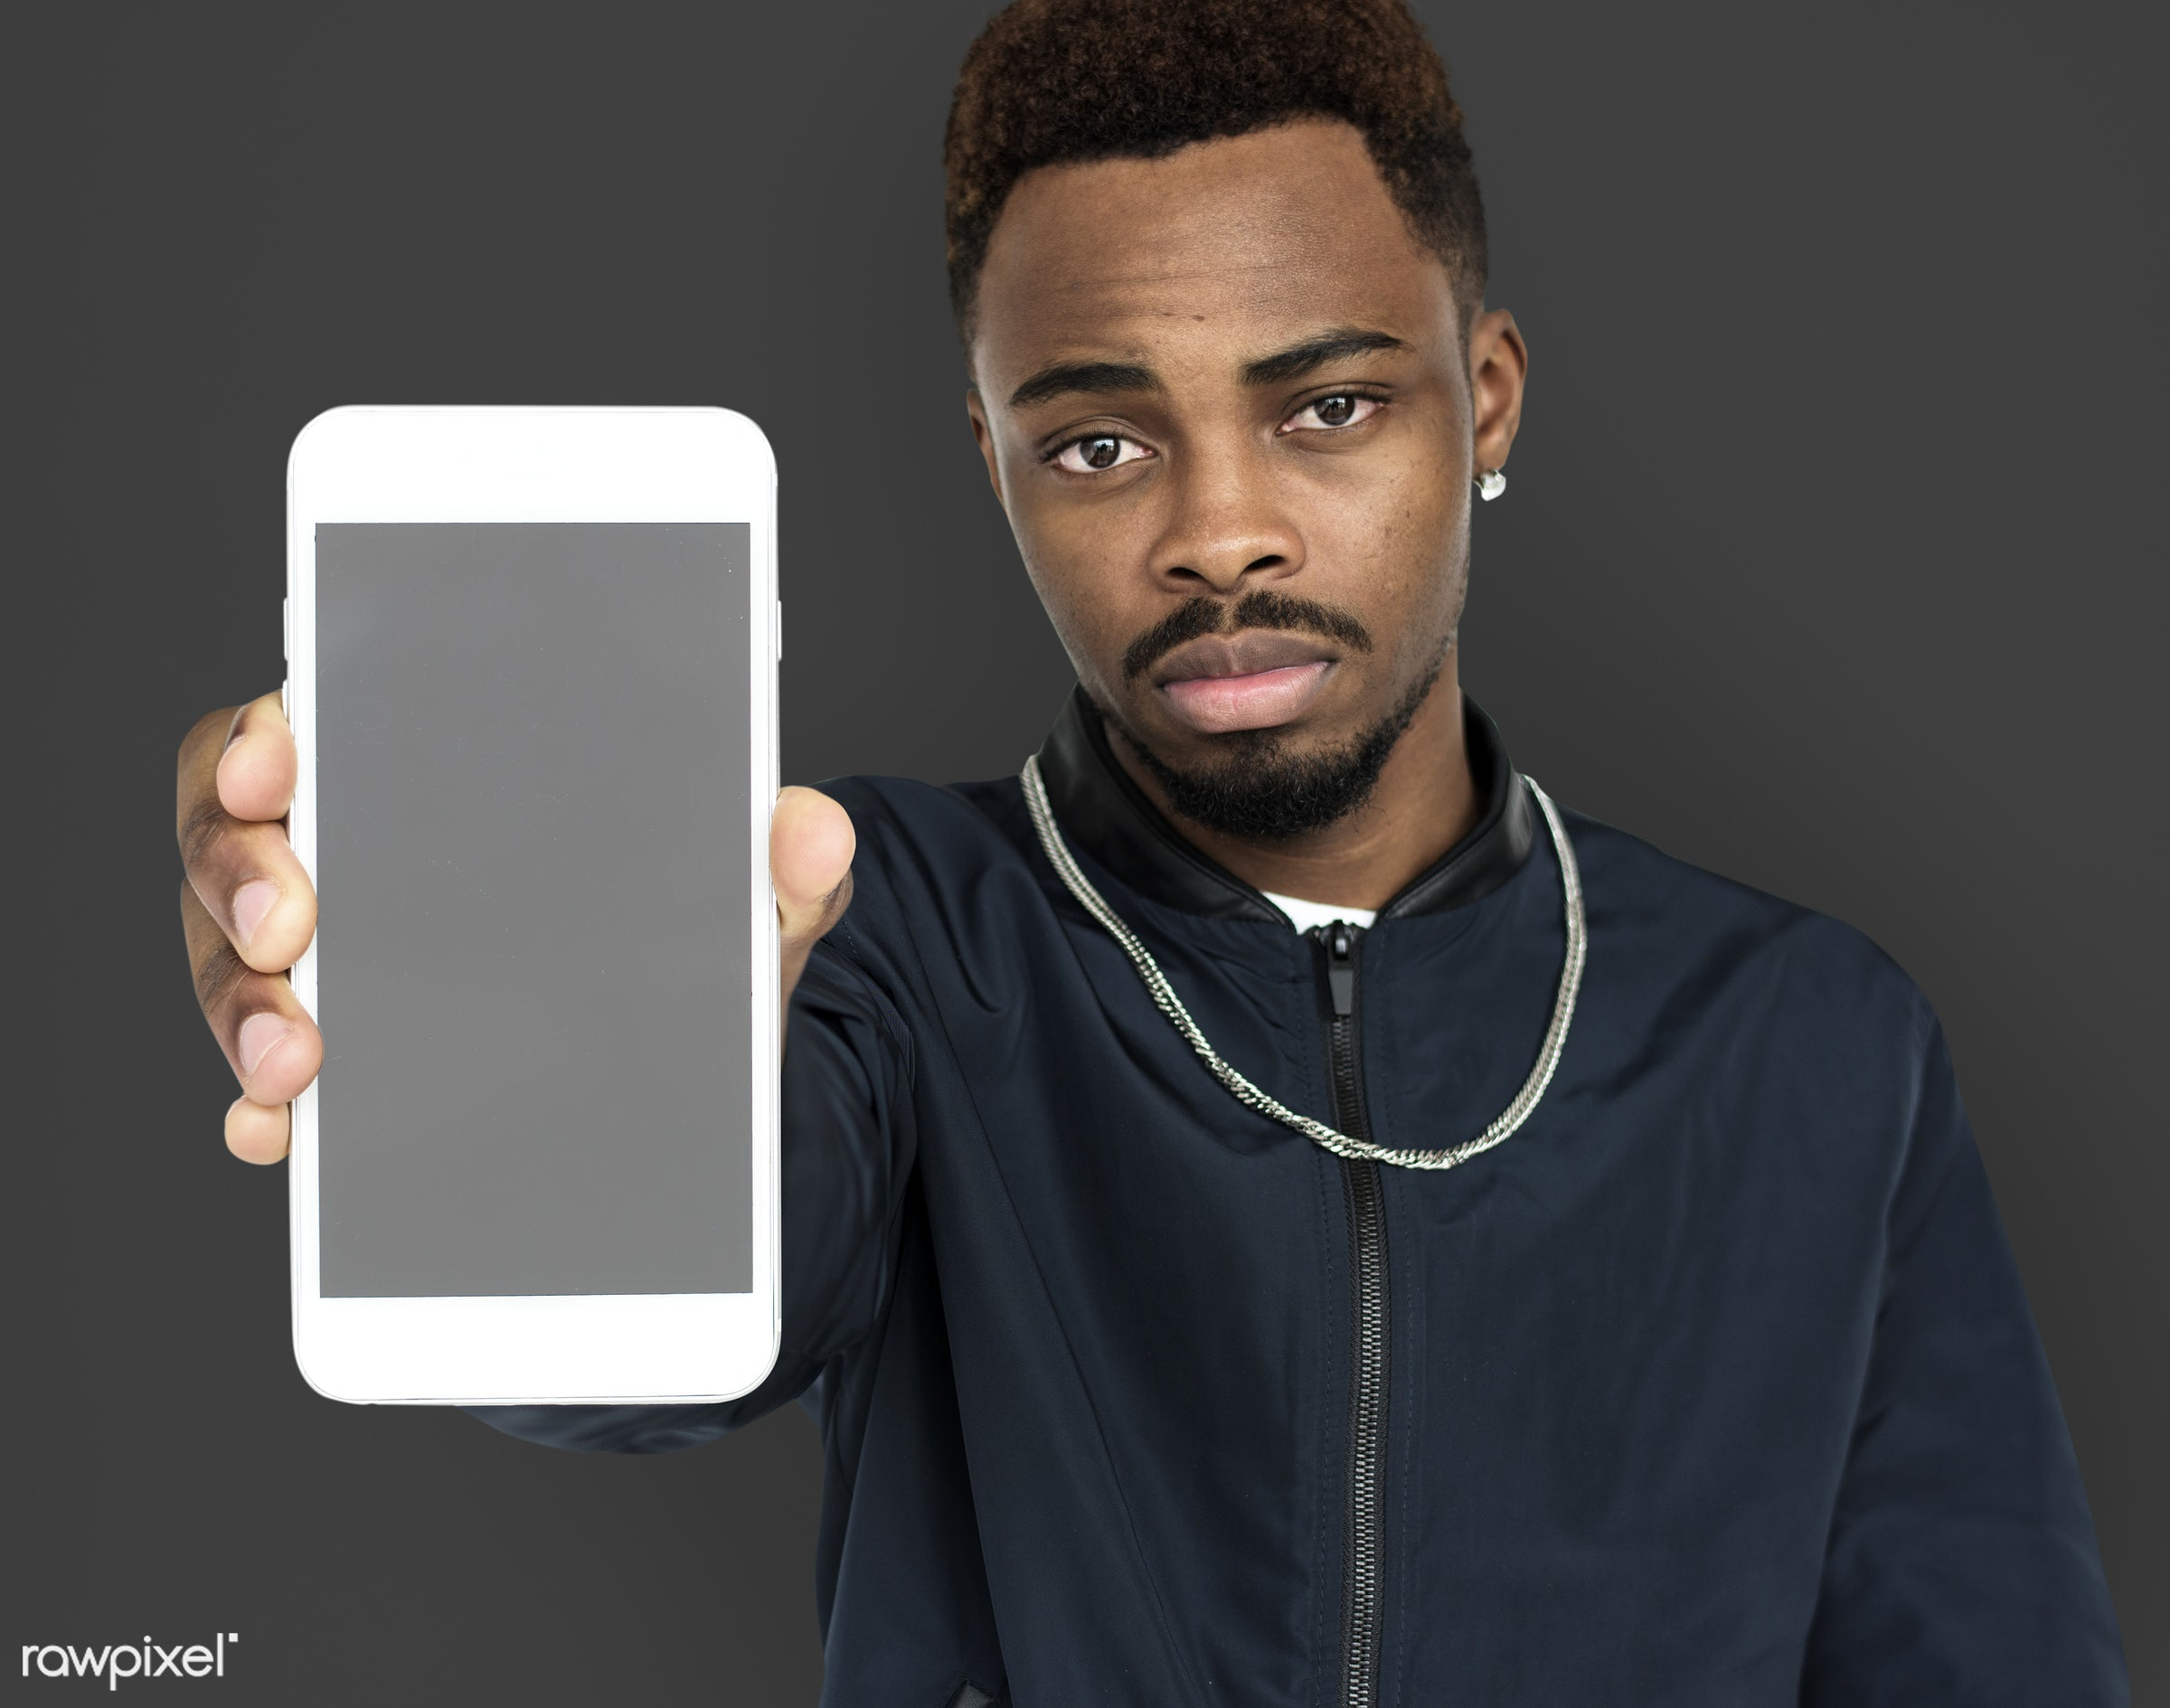 african descent, background, beard, black, communication, device, emotion, expression, focused, grey, holding, holding phone...